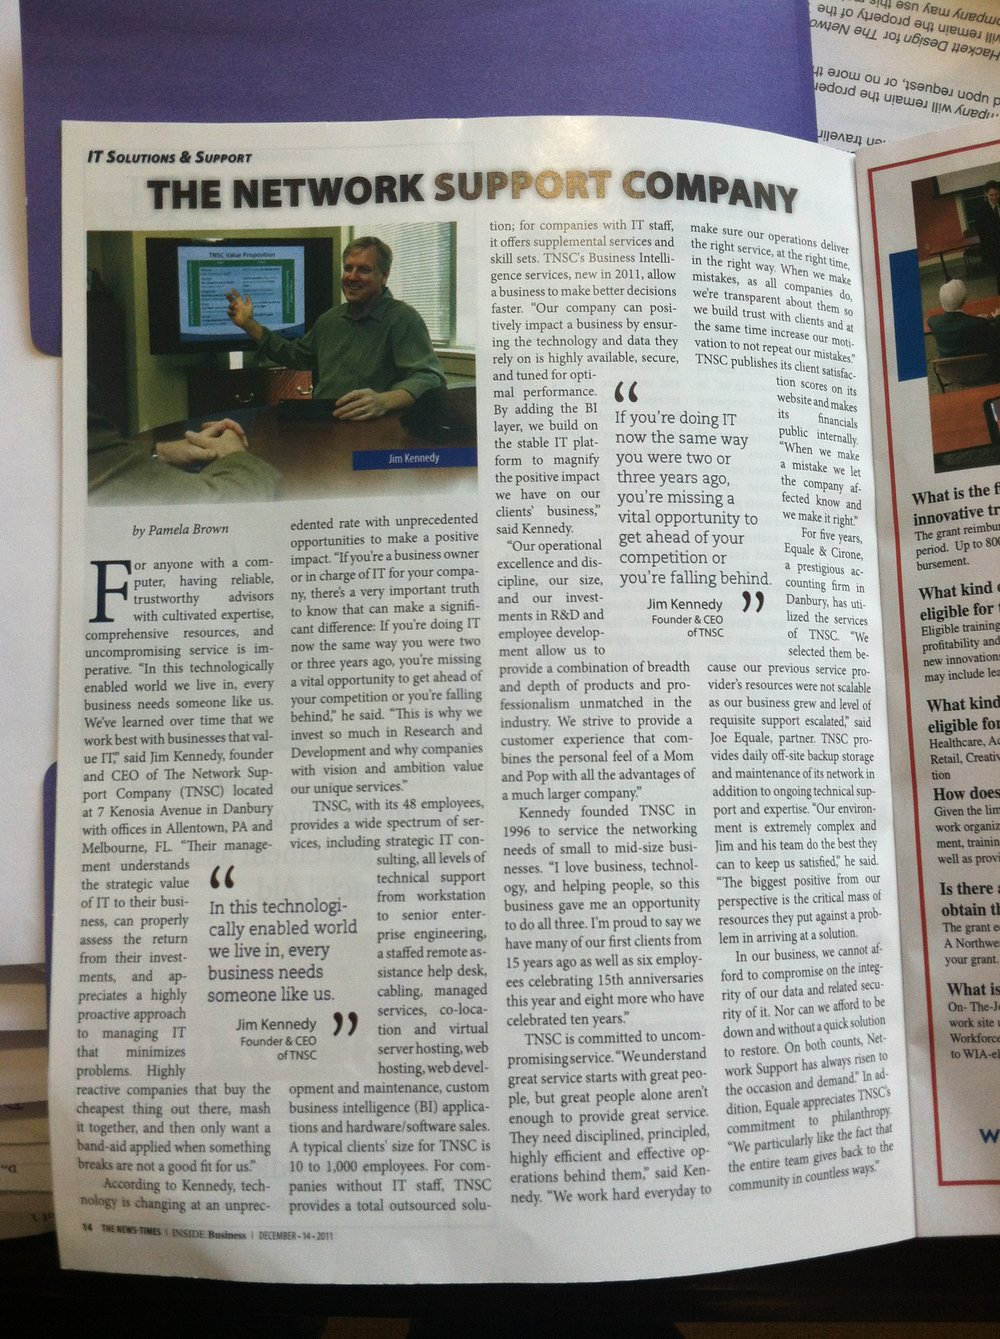 The News Times - Inside Business - 12-14-11.JPG